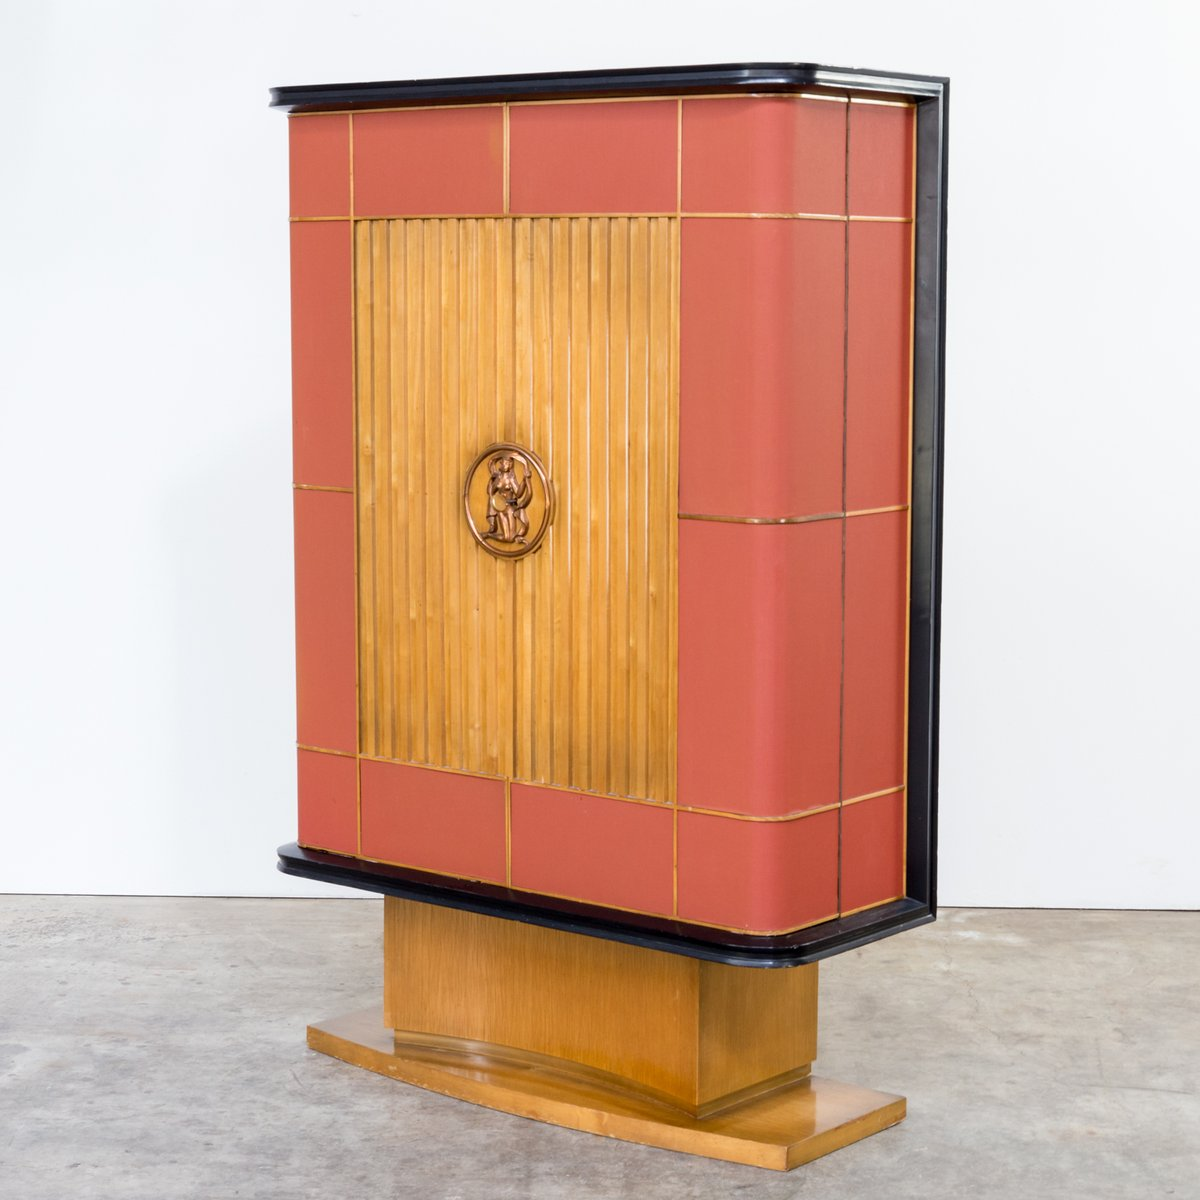 Art deco cabinet 1930s for sale at pamono for 1930s kitchen cabinets for sale